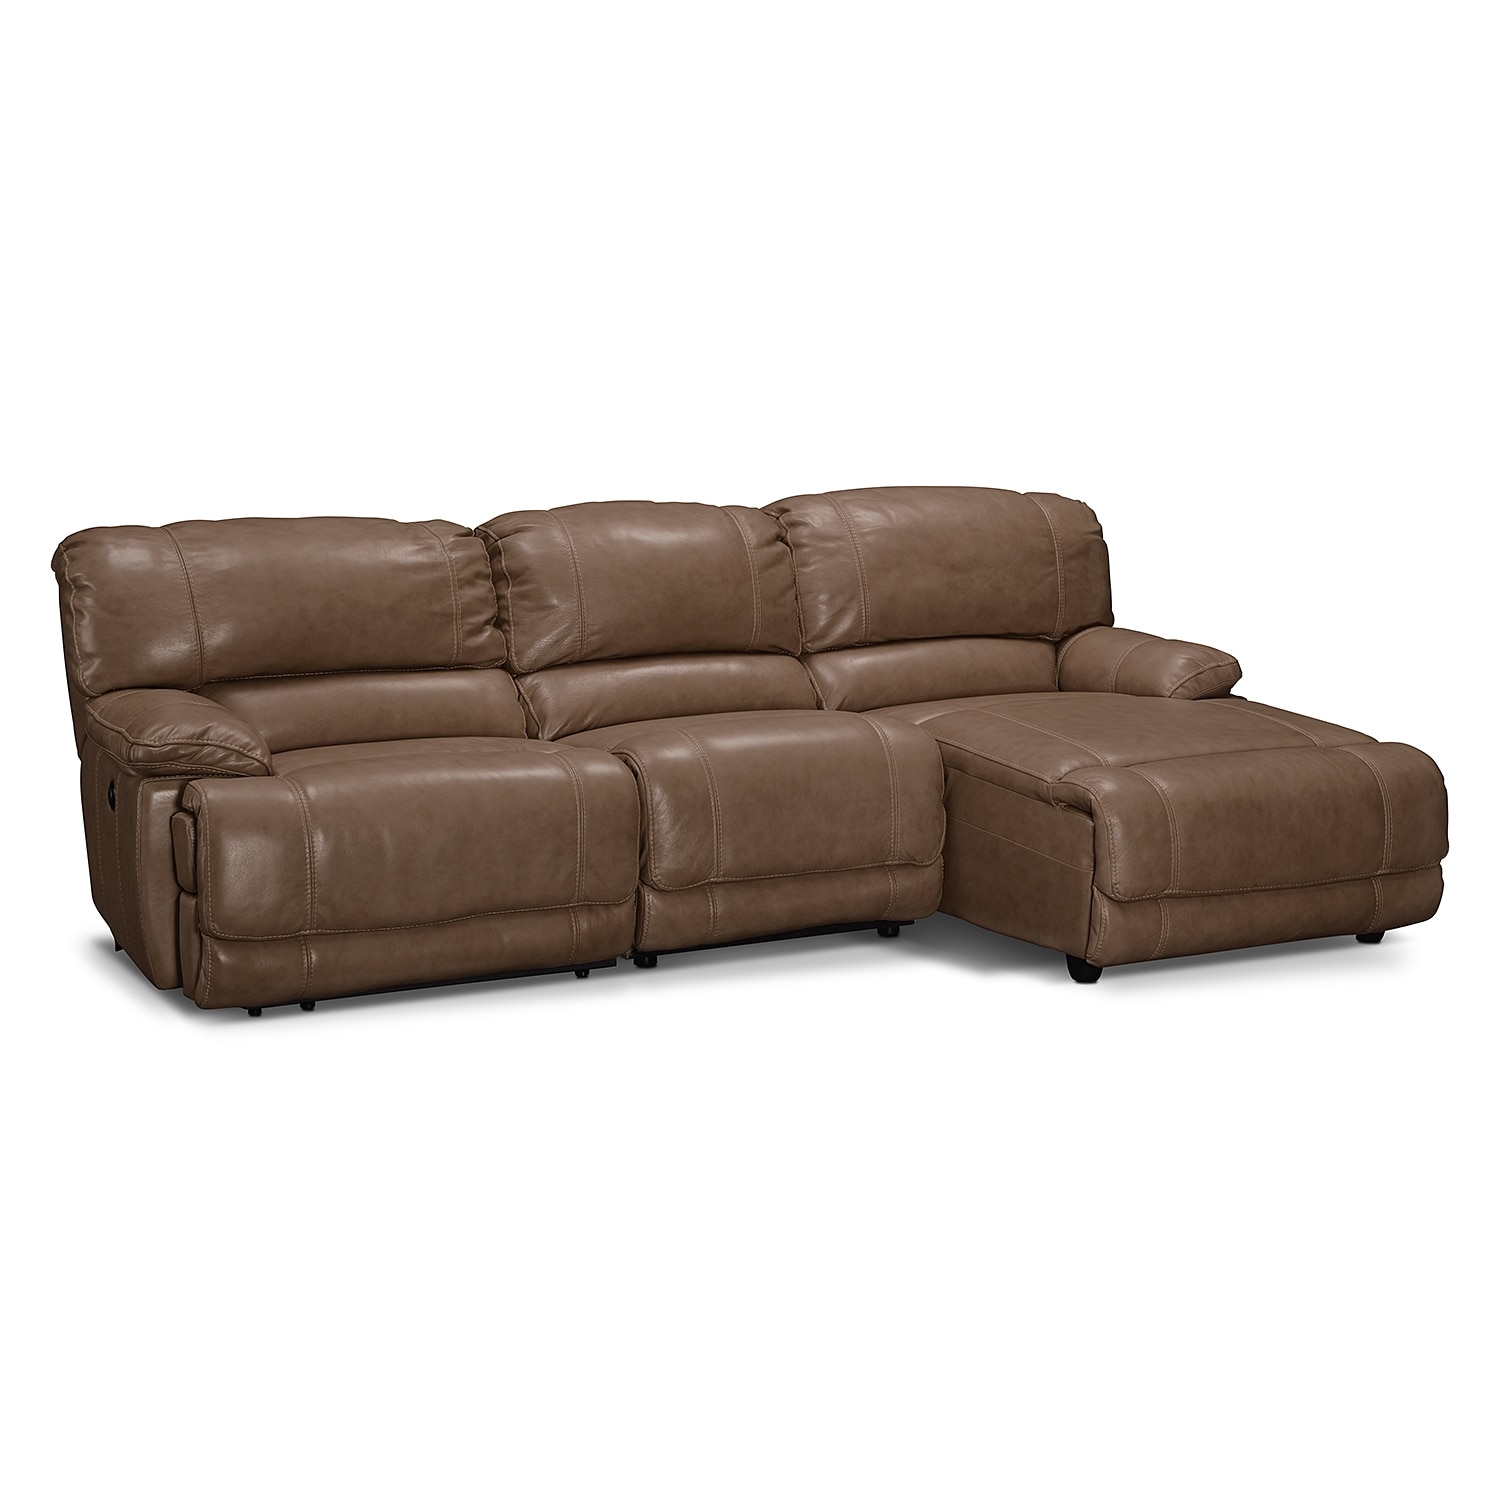 Living Room Furniture - Clinton Taupe 3 Pc. Power Reclining Sectional